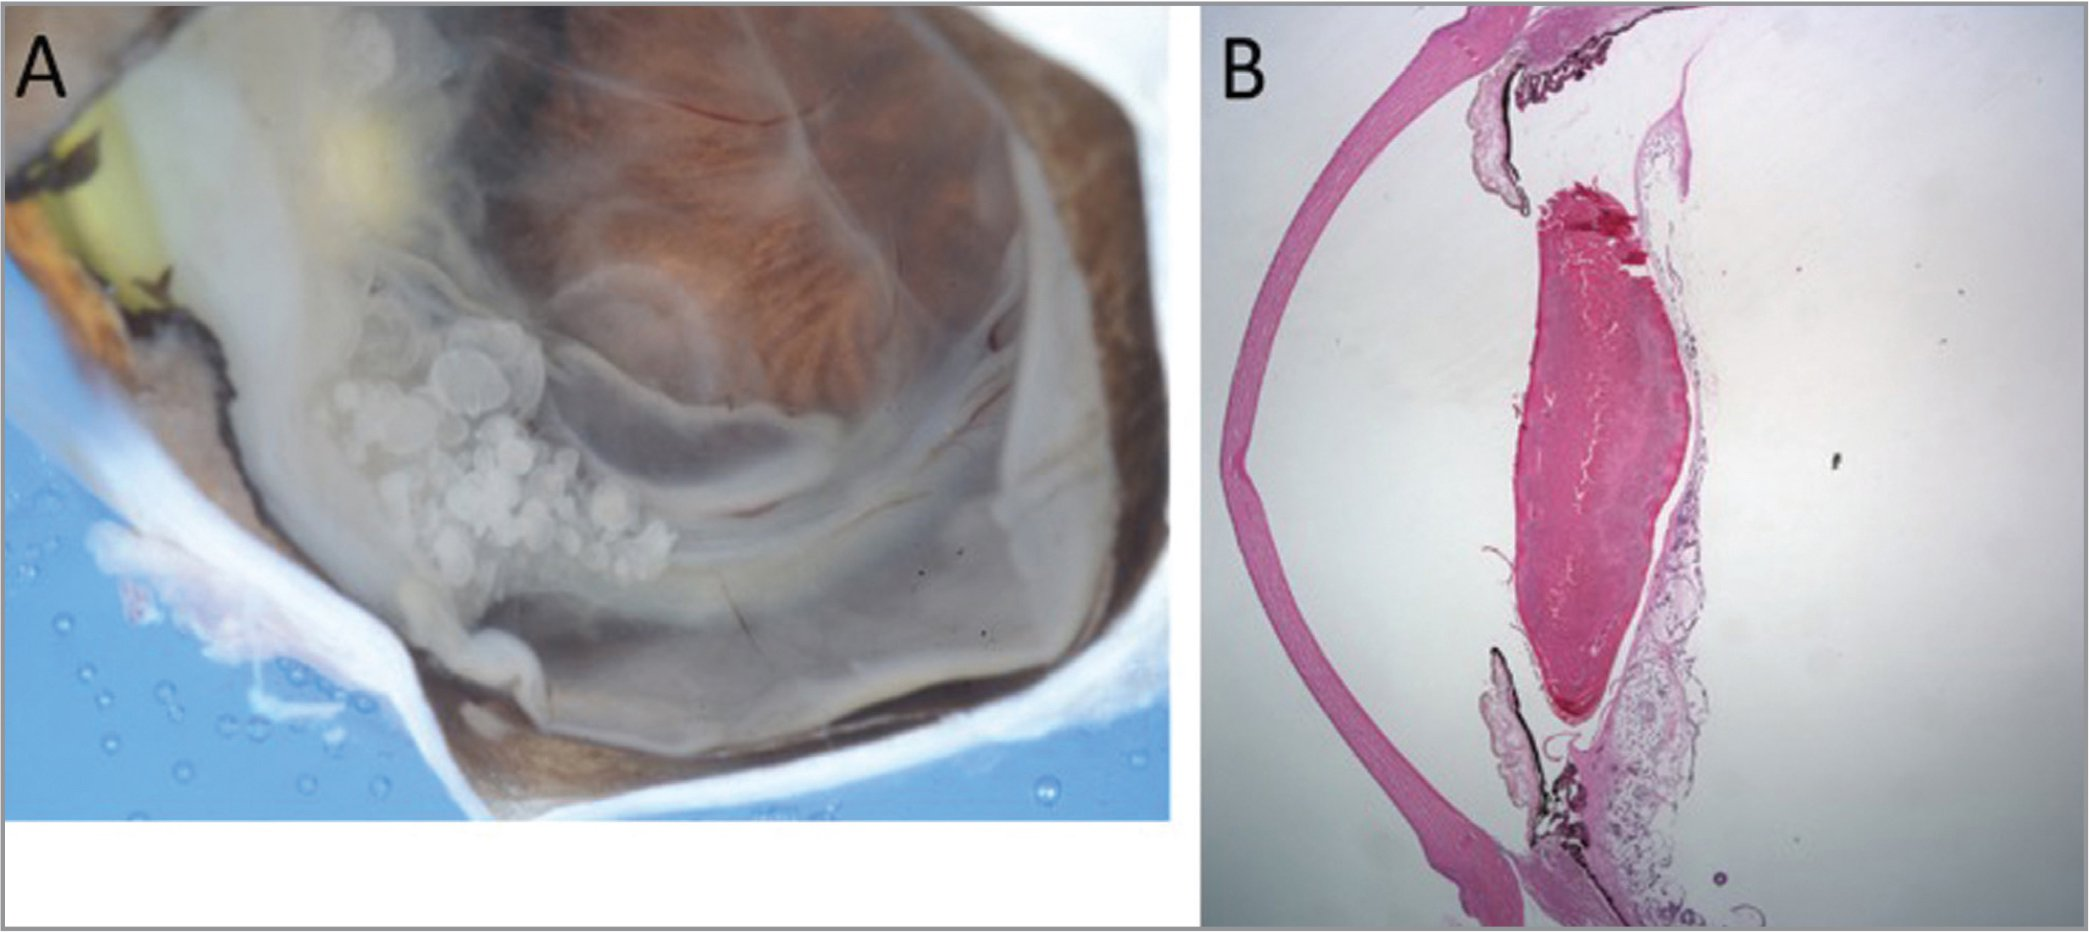 Gross imaging (A) and hematoxylin and eosin (B) of an enucleated specimen demonstrating cystic tumor emanating from the ciliary body with retrolental invasion.